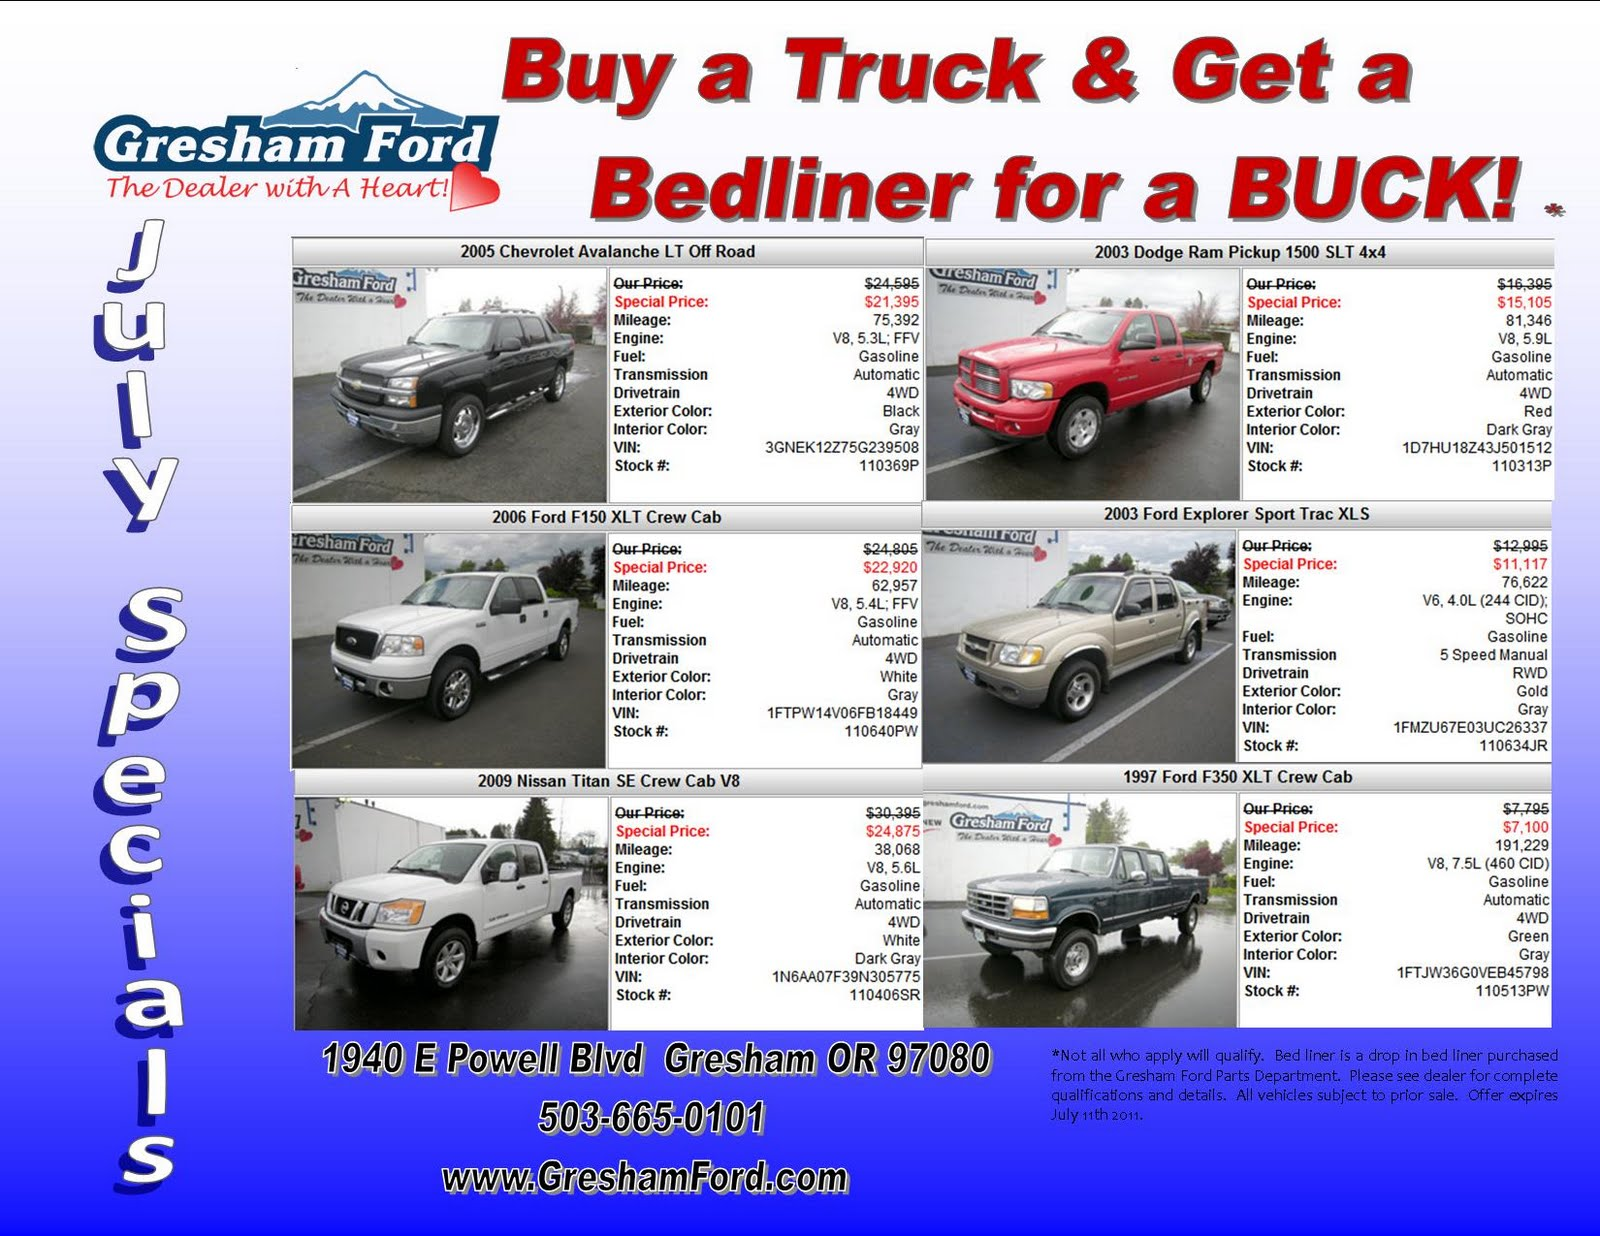 Gresham Ford Your Oregon Ford Dealership Truck Specials At